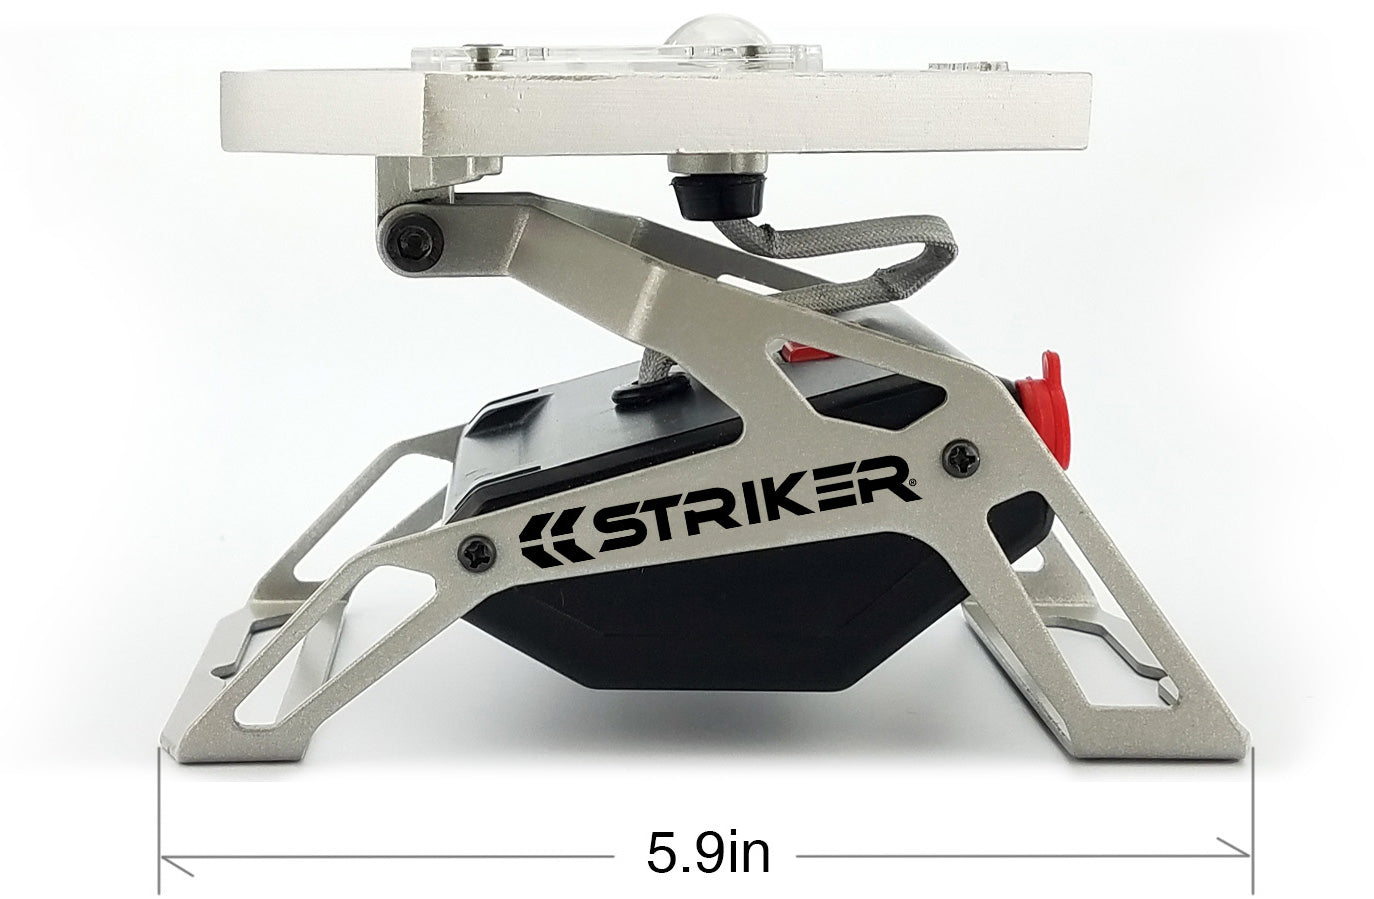 Striker ROVER dimensions